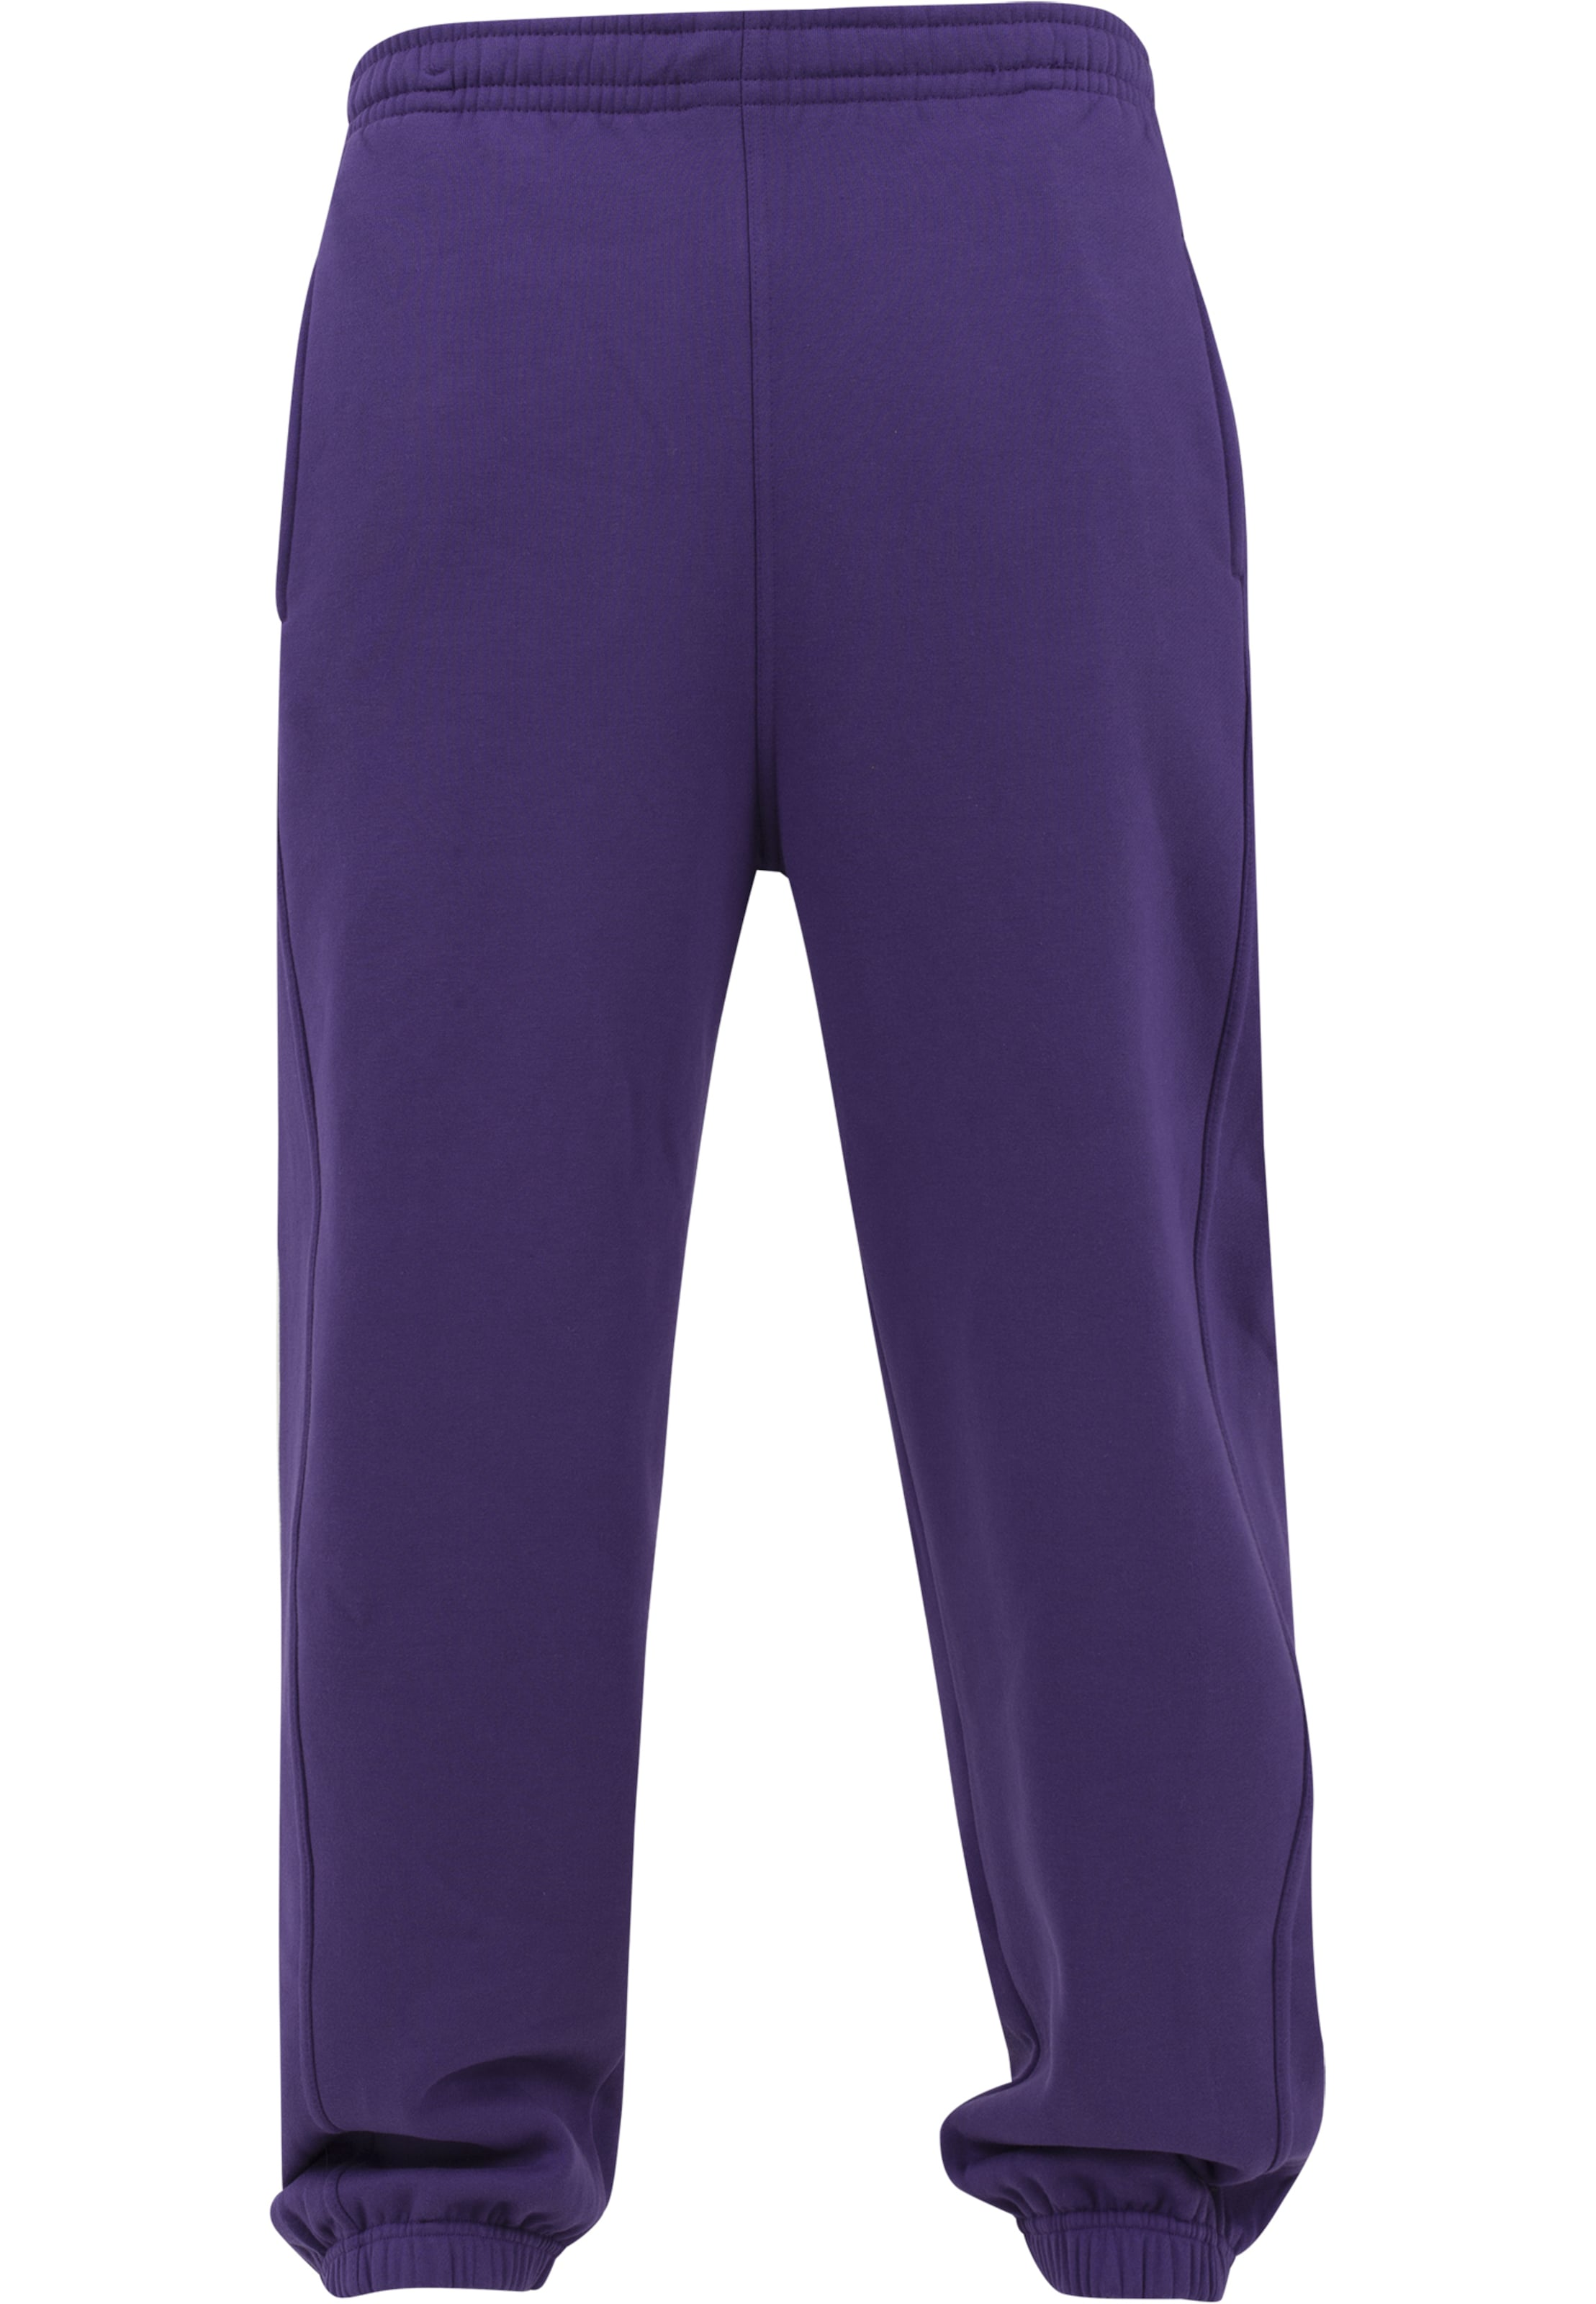 In Classics Sweatpants Sweatpants In Urban Urban Dunkellila Classics Dunkellila htrQsd